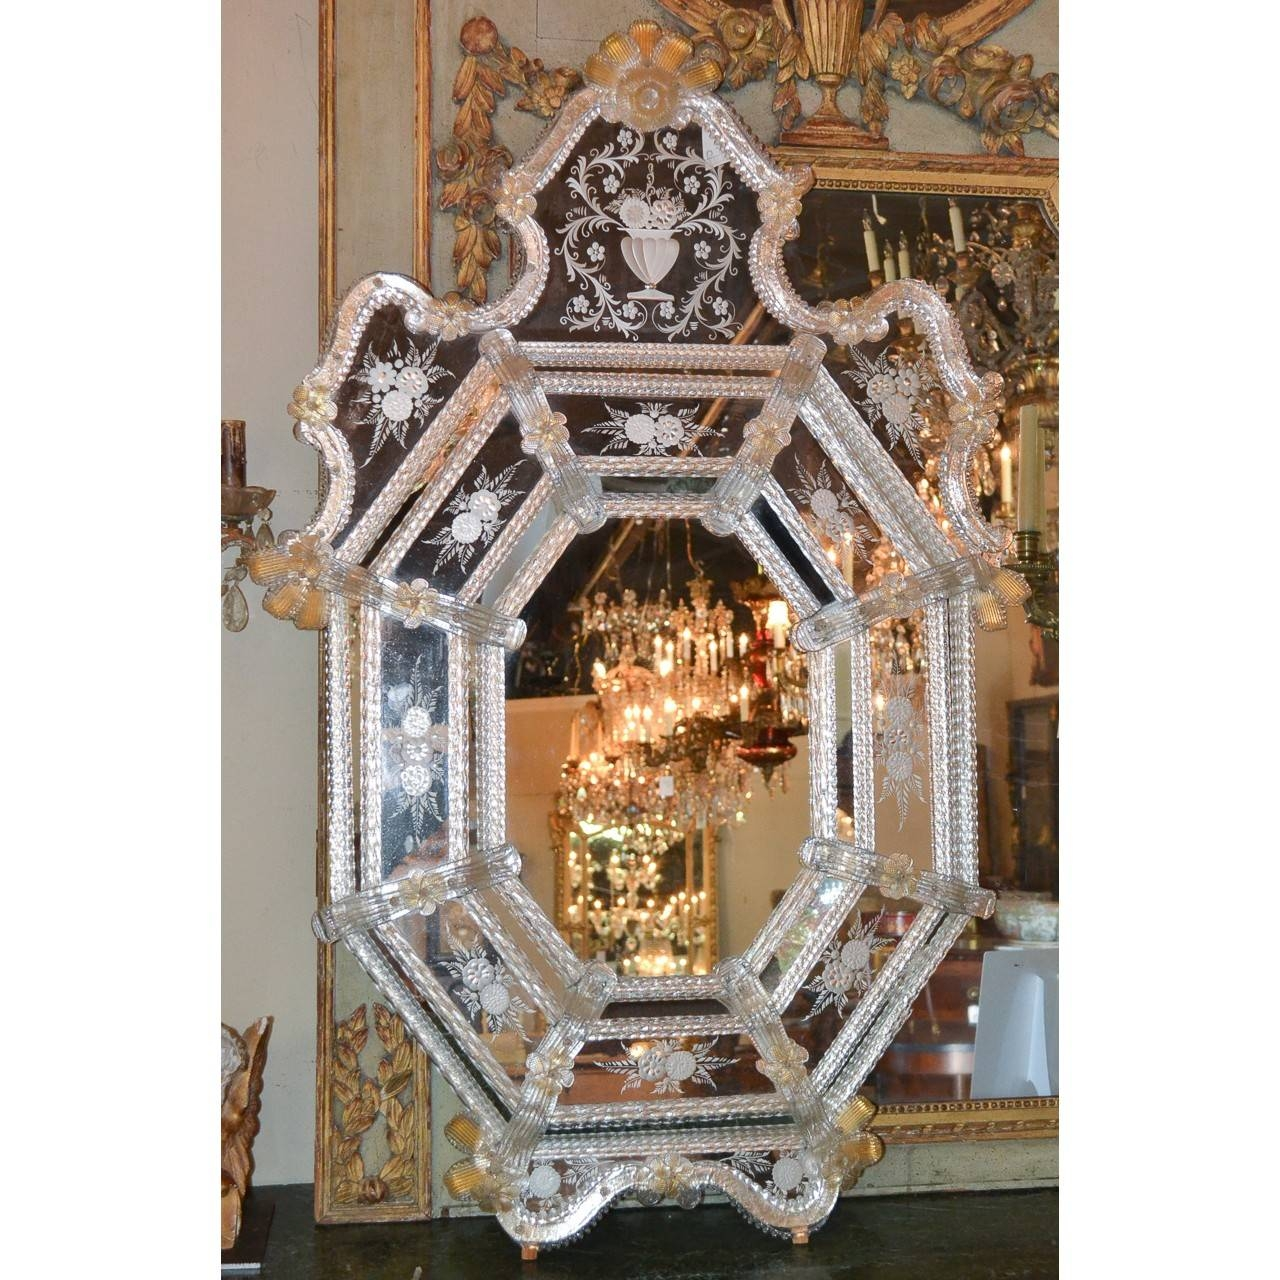 Beautiful Antique Venetian Etched Glass Mirror - Legacy Antiques within Venetian Antique Mirrors (Image 8 of 25)